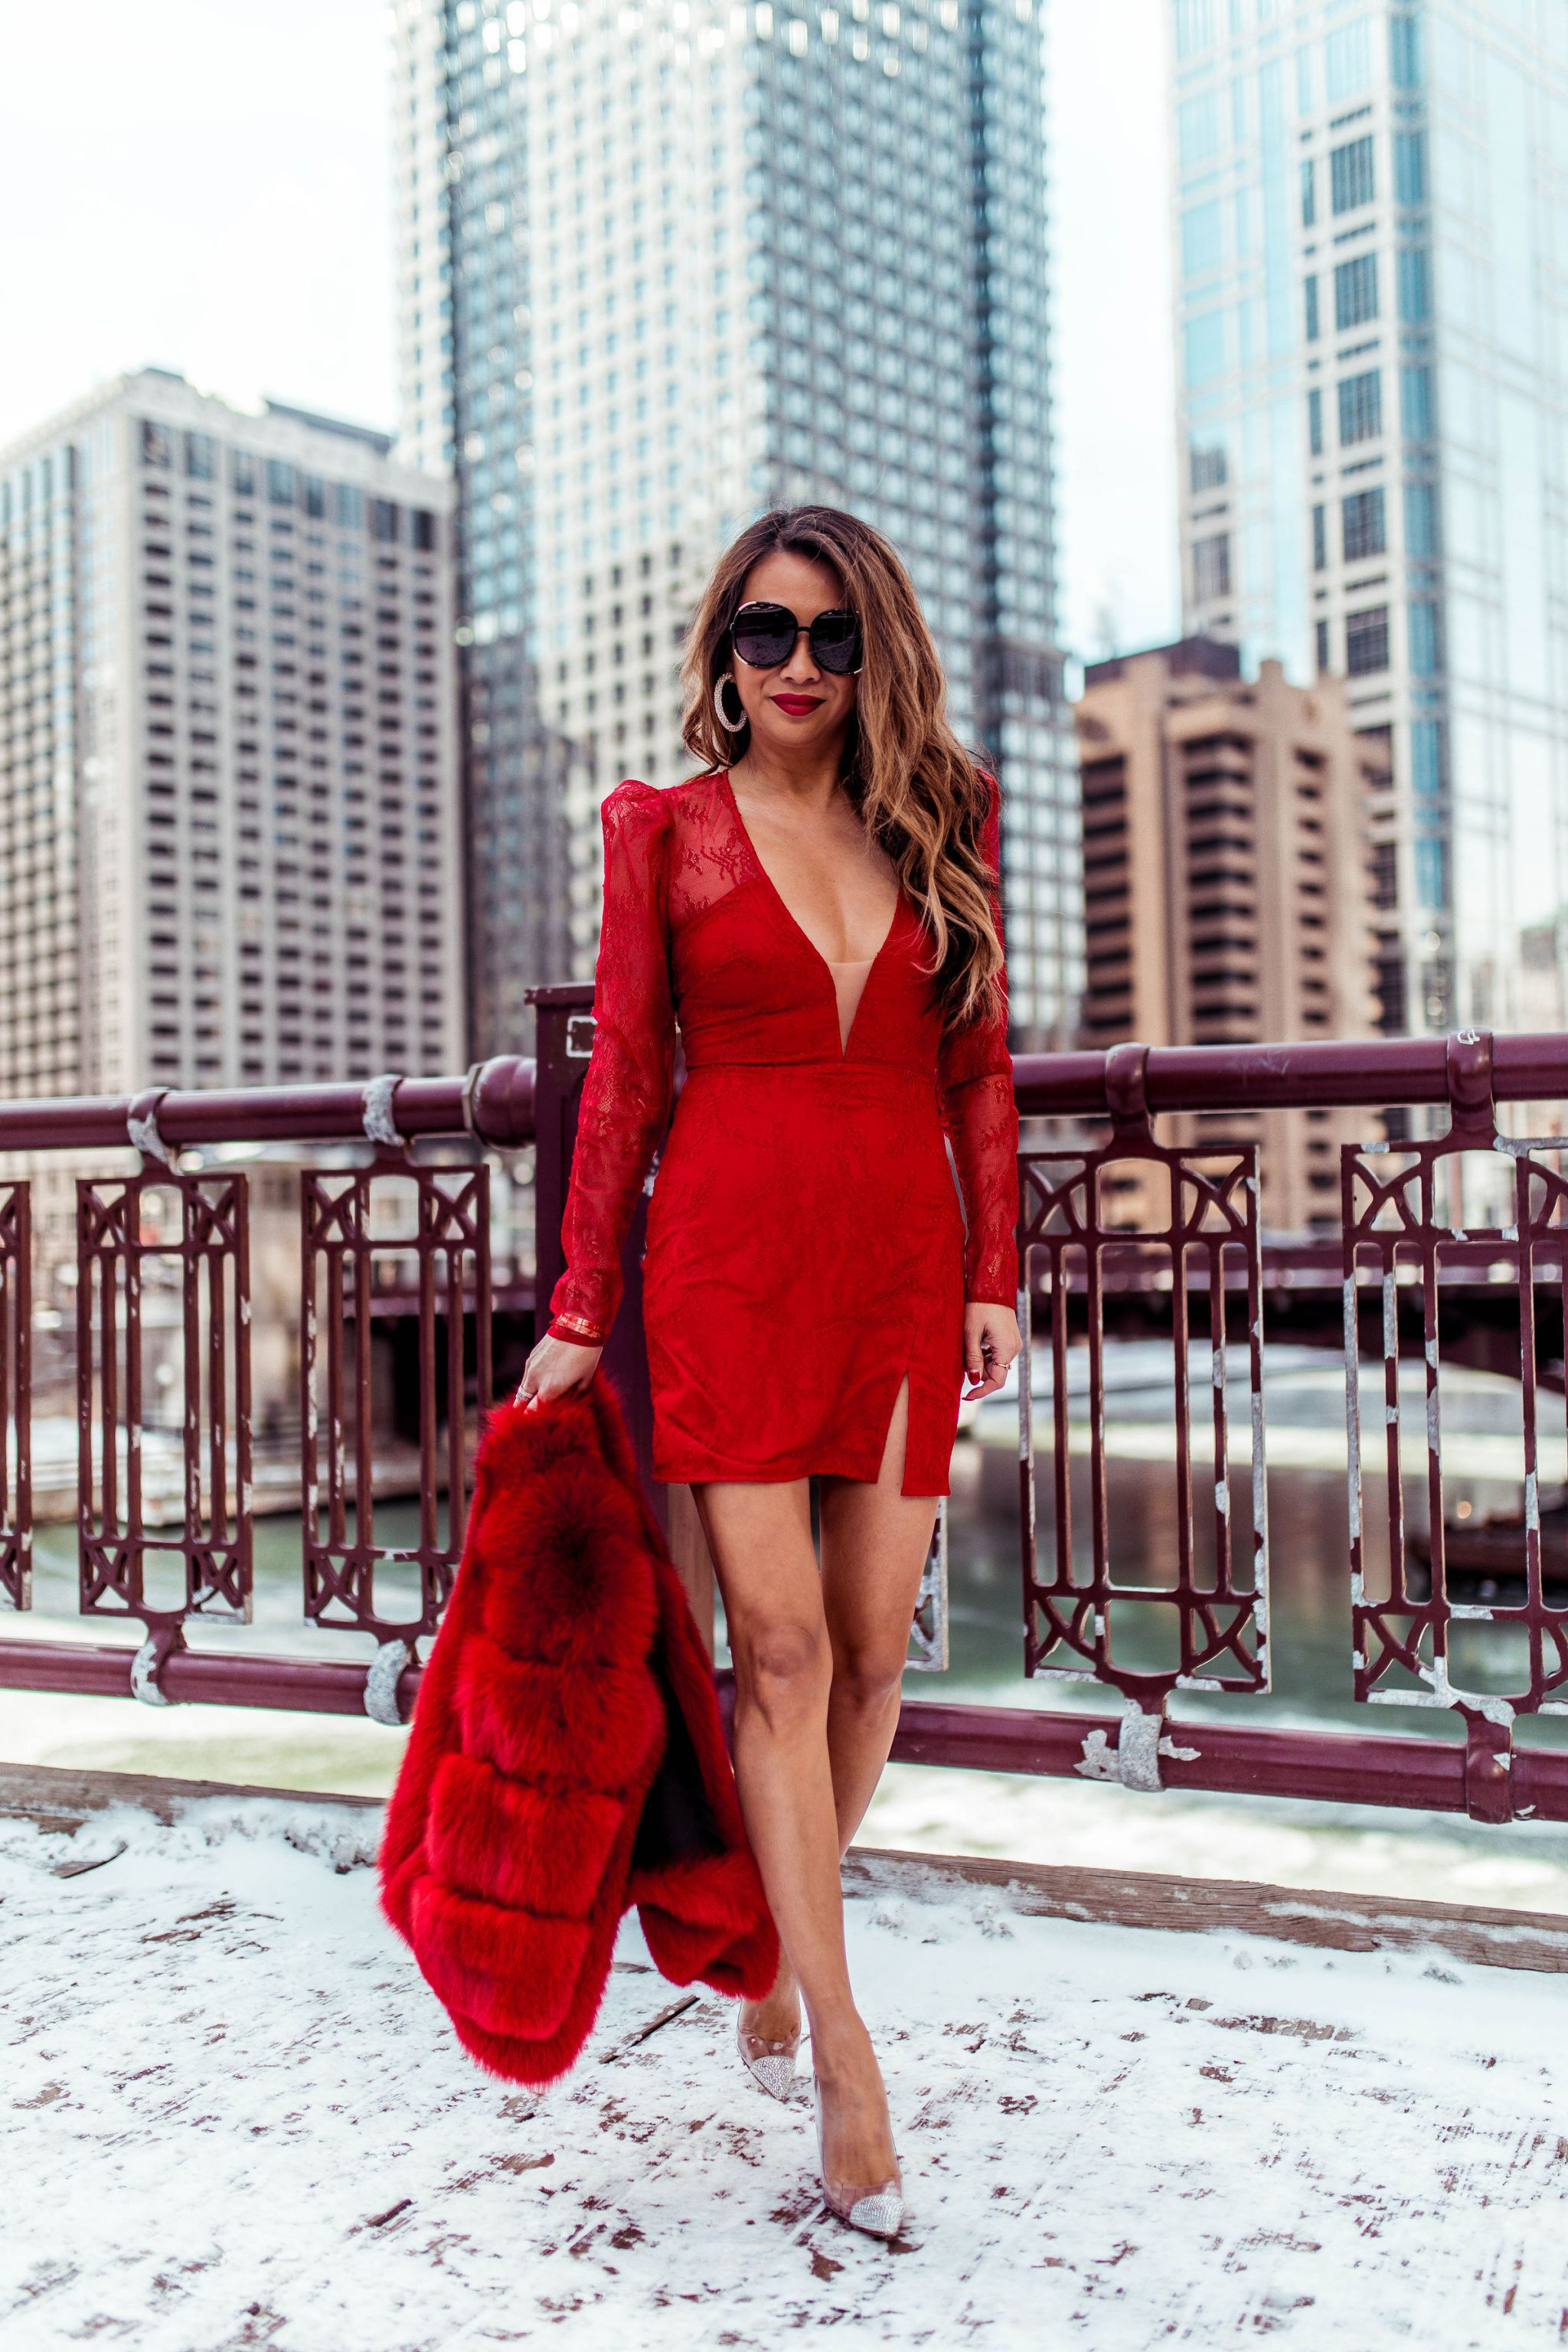 Michael Costello Dress, Best Red Dress, Chicago Fashion Blogger, Chicago Riverwalk, Vday style, Jennifer Worman, Best spot to take photos in Chicago, Revolve Red Dress